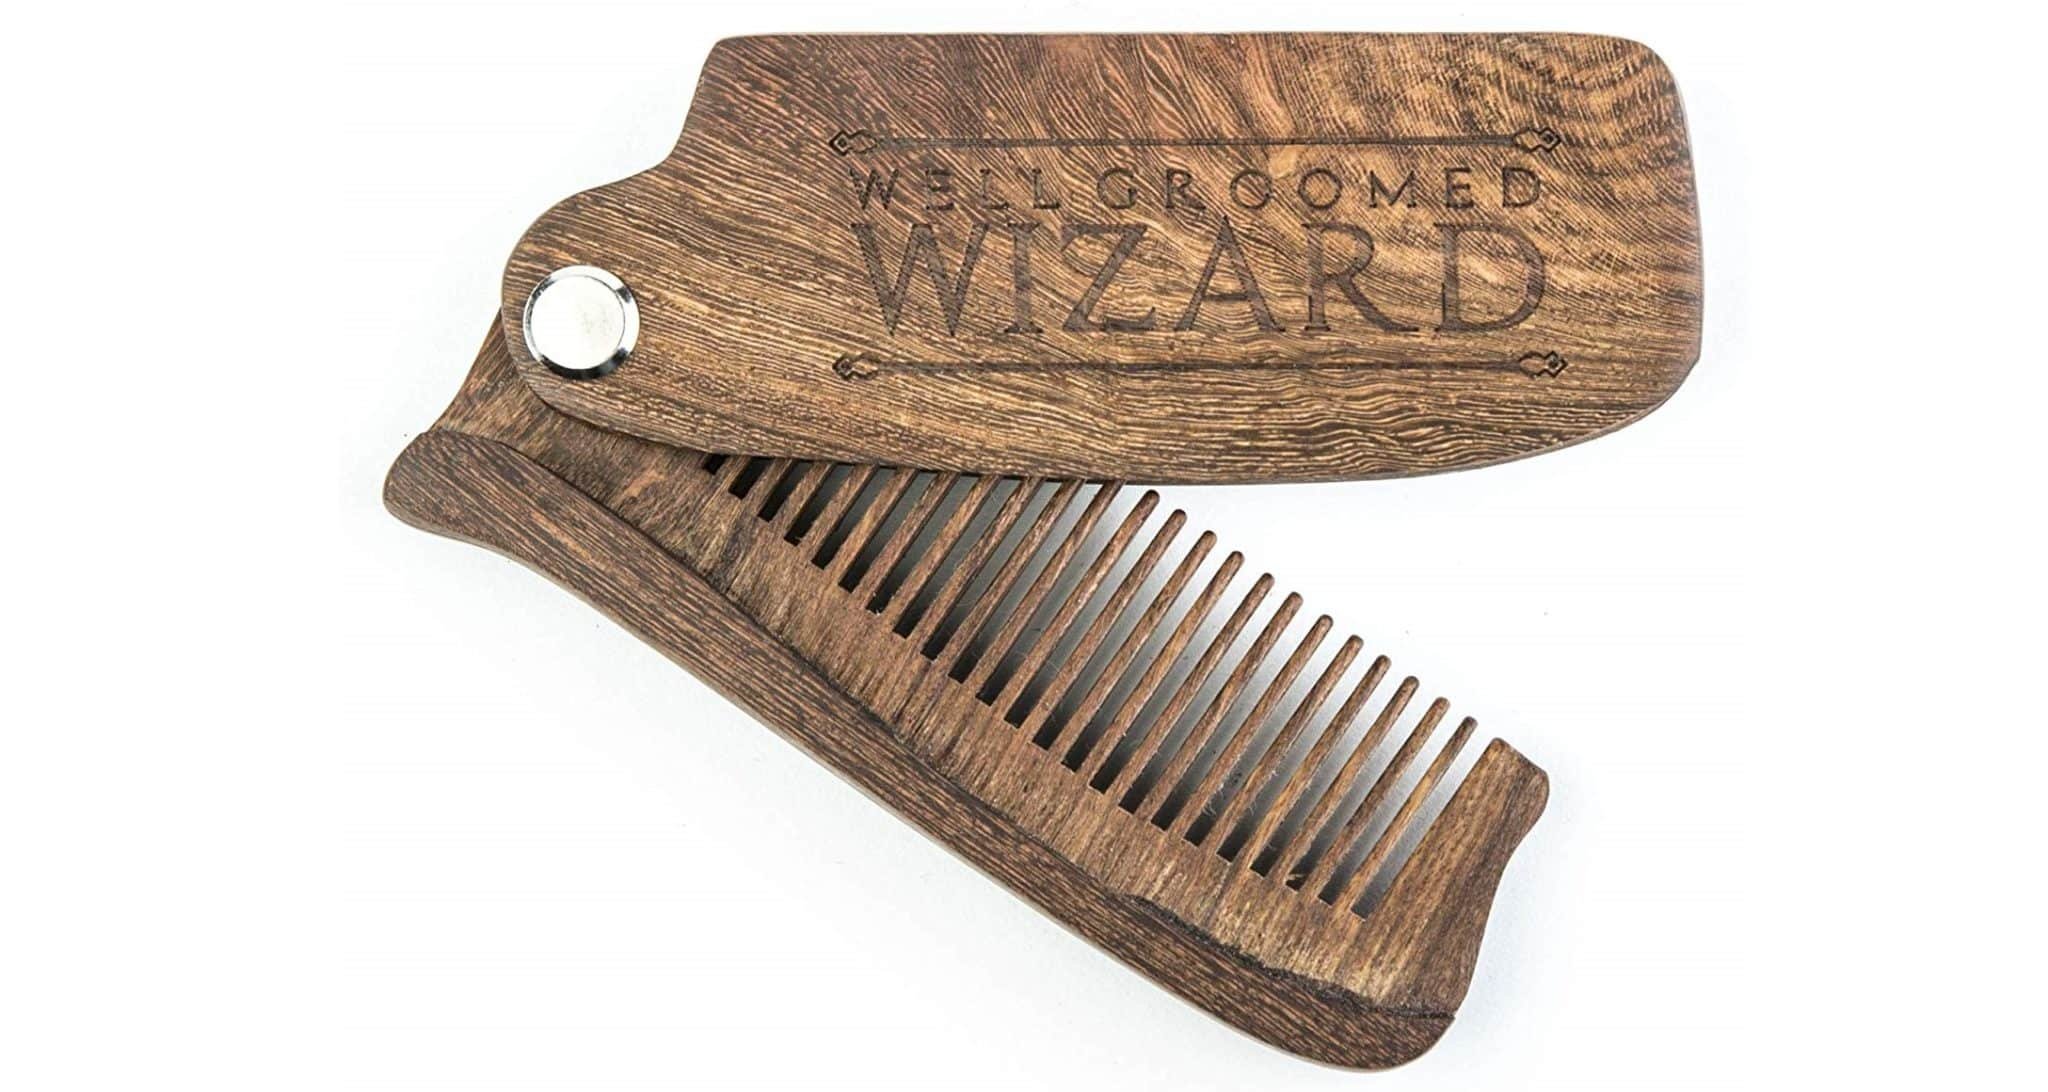 Peigne en bois de santal Well Groomed Wizard